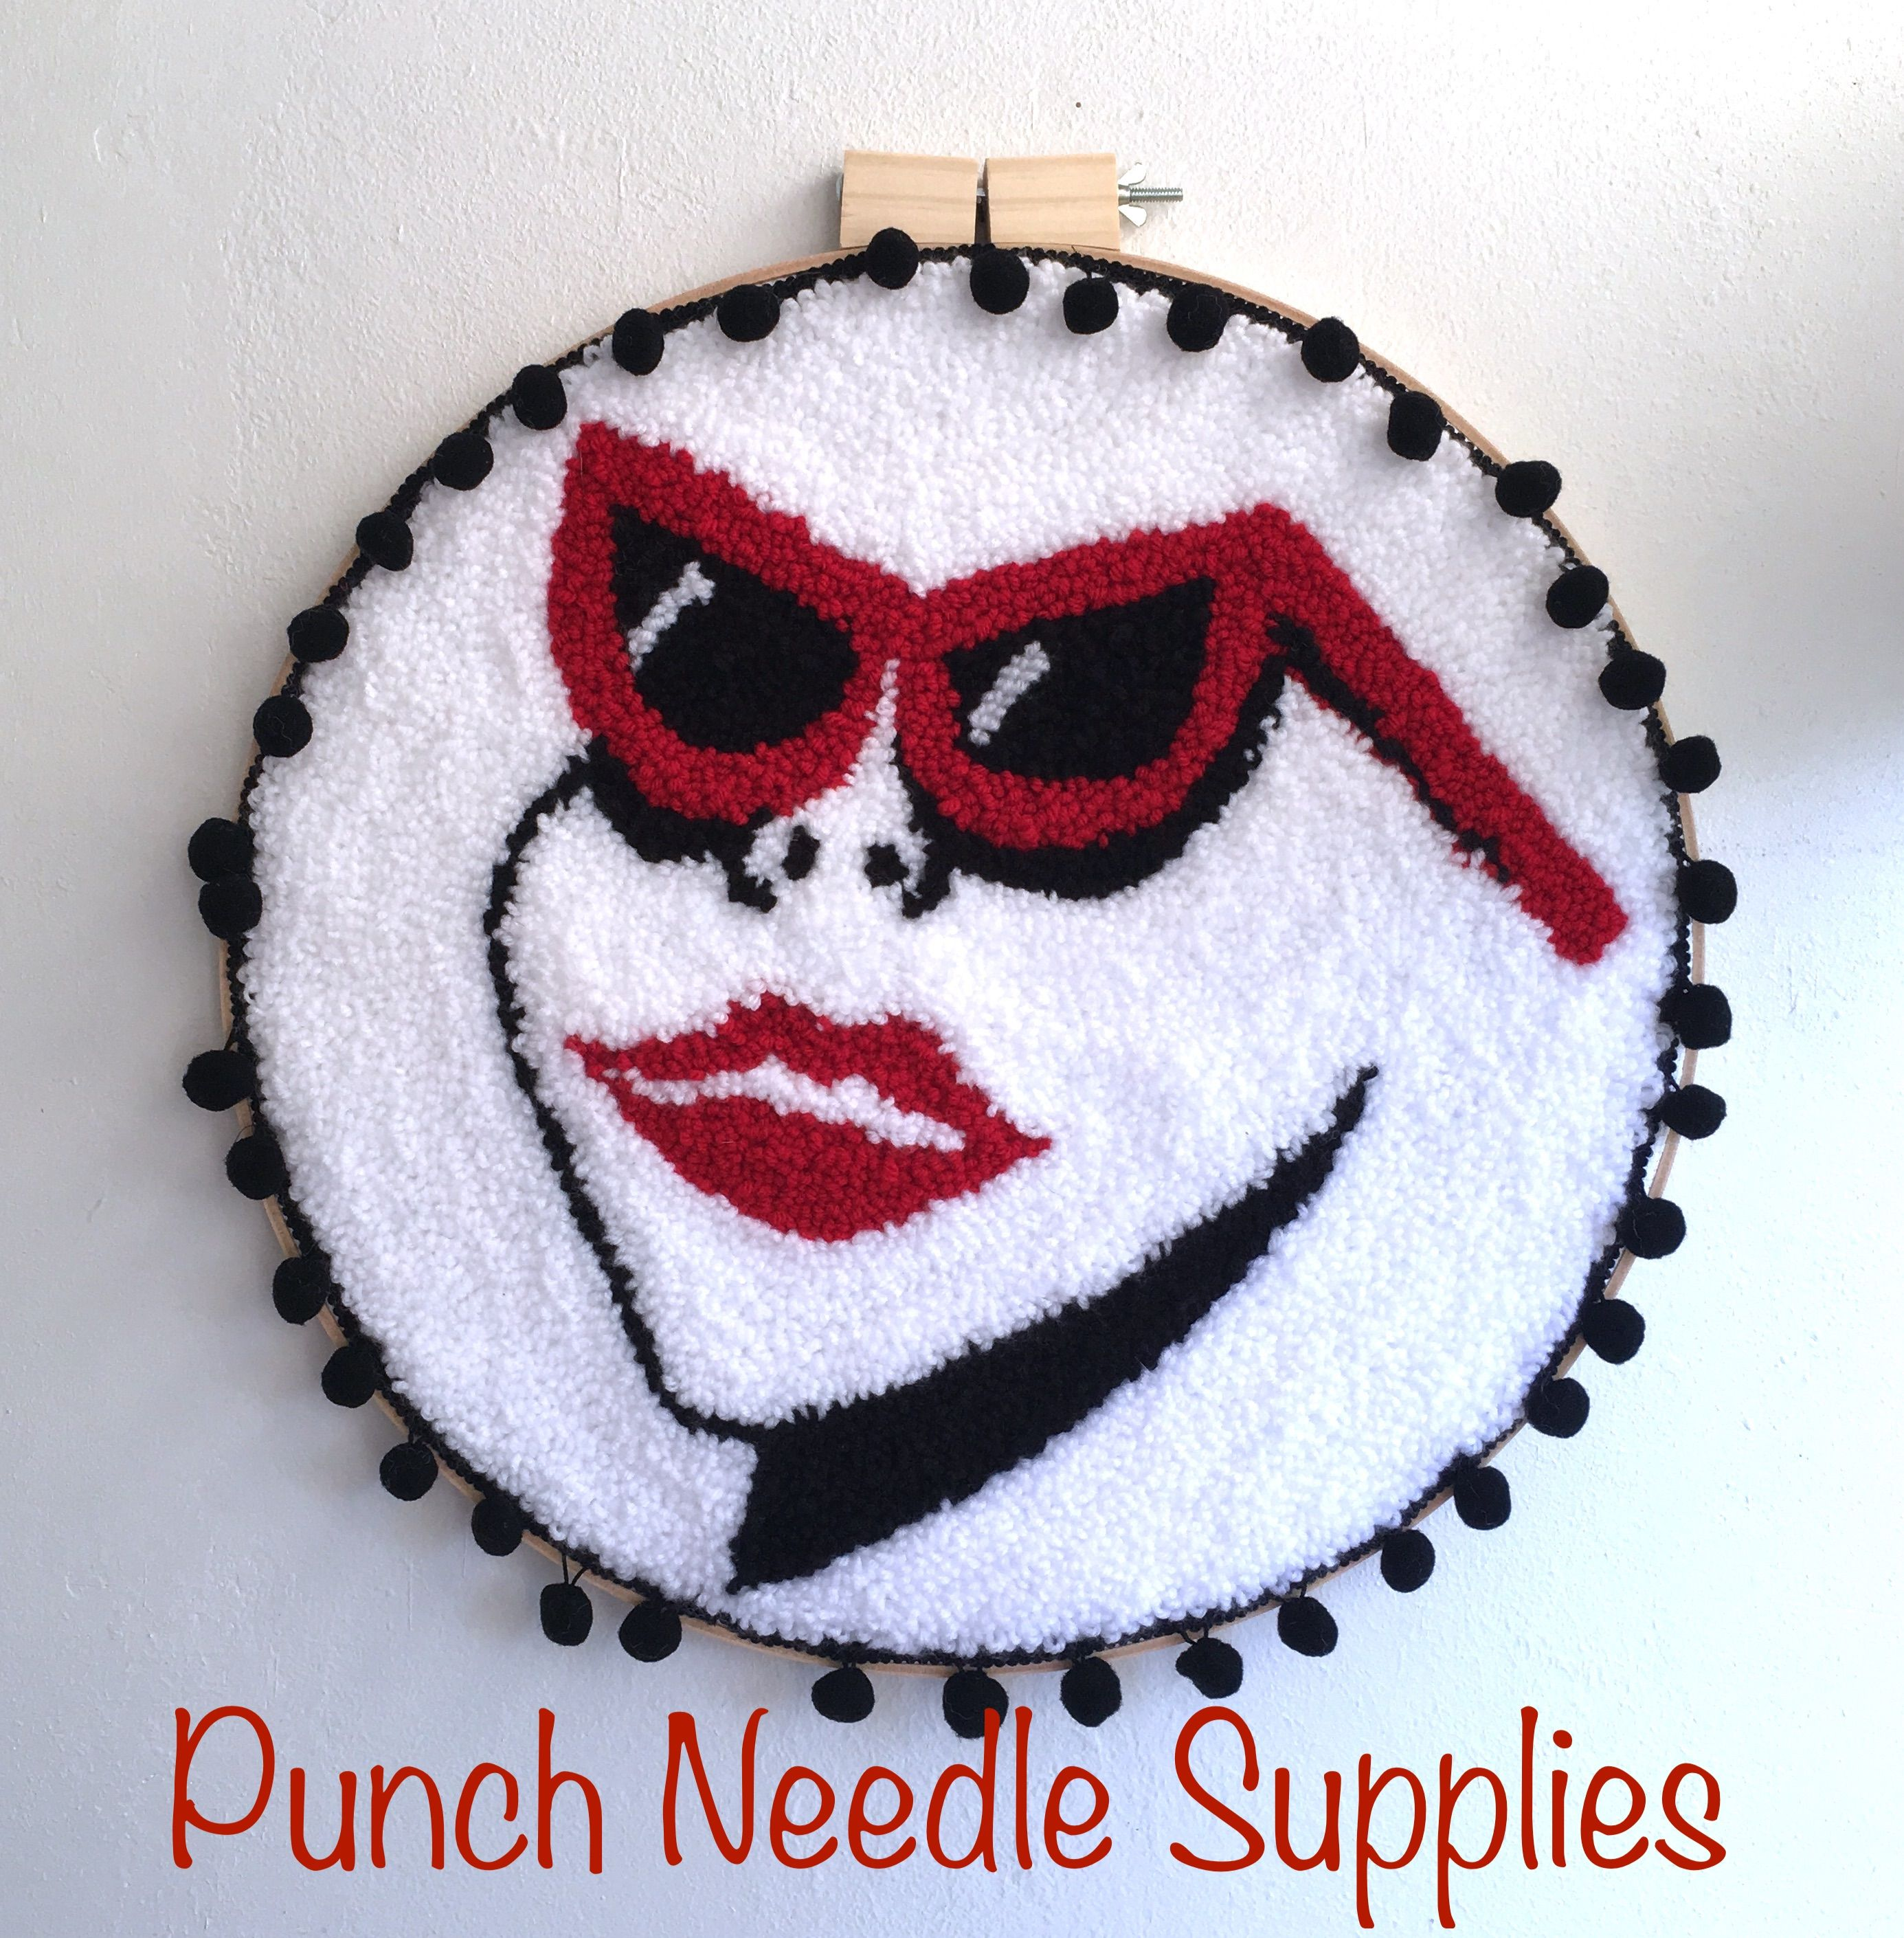 Punch Needle Supplies Rug Backing Fabric Yarn And Adjule Needles Learn A New Craft Today See Why Everyone Is Hooked